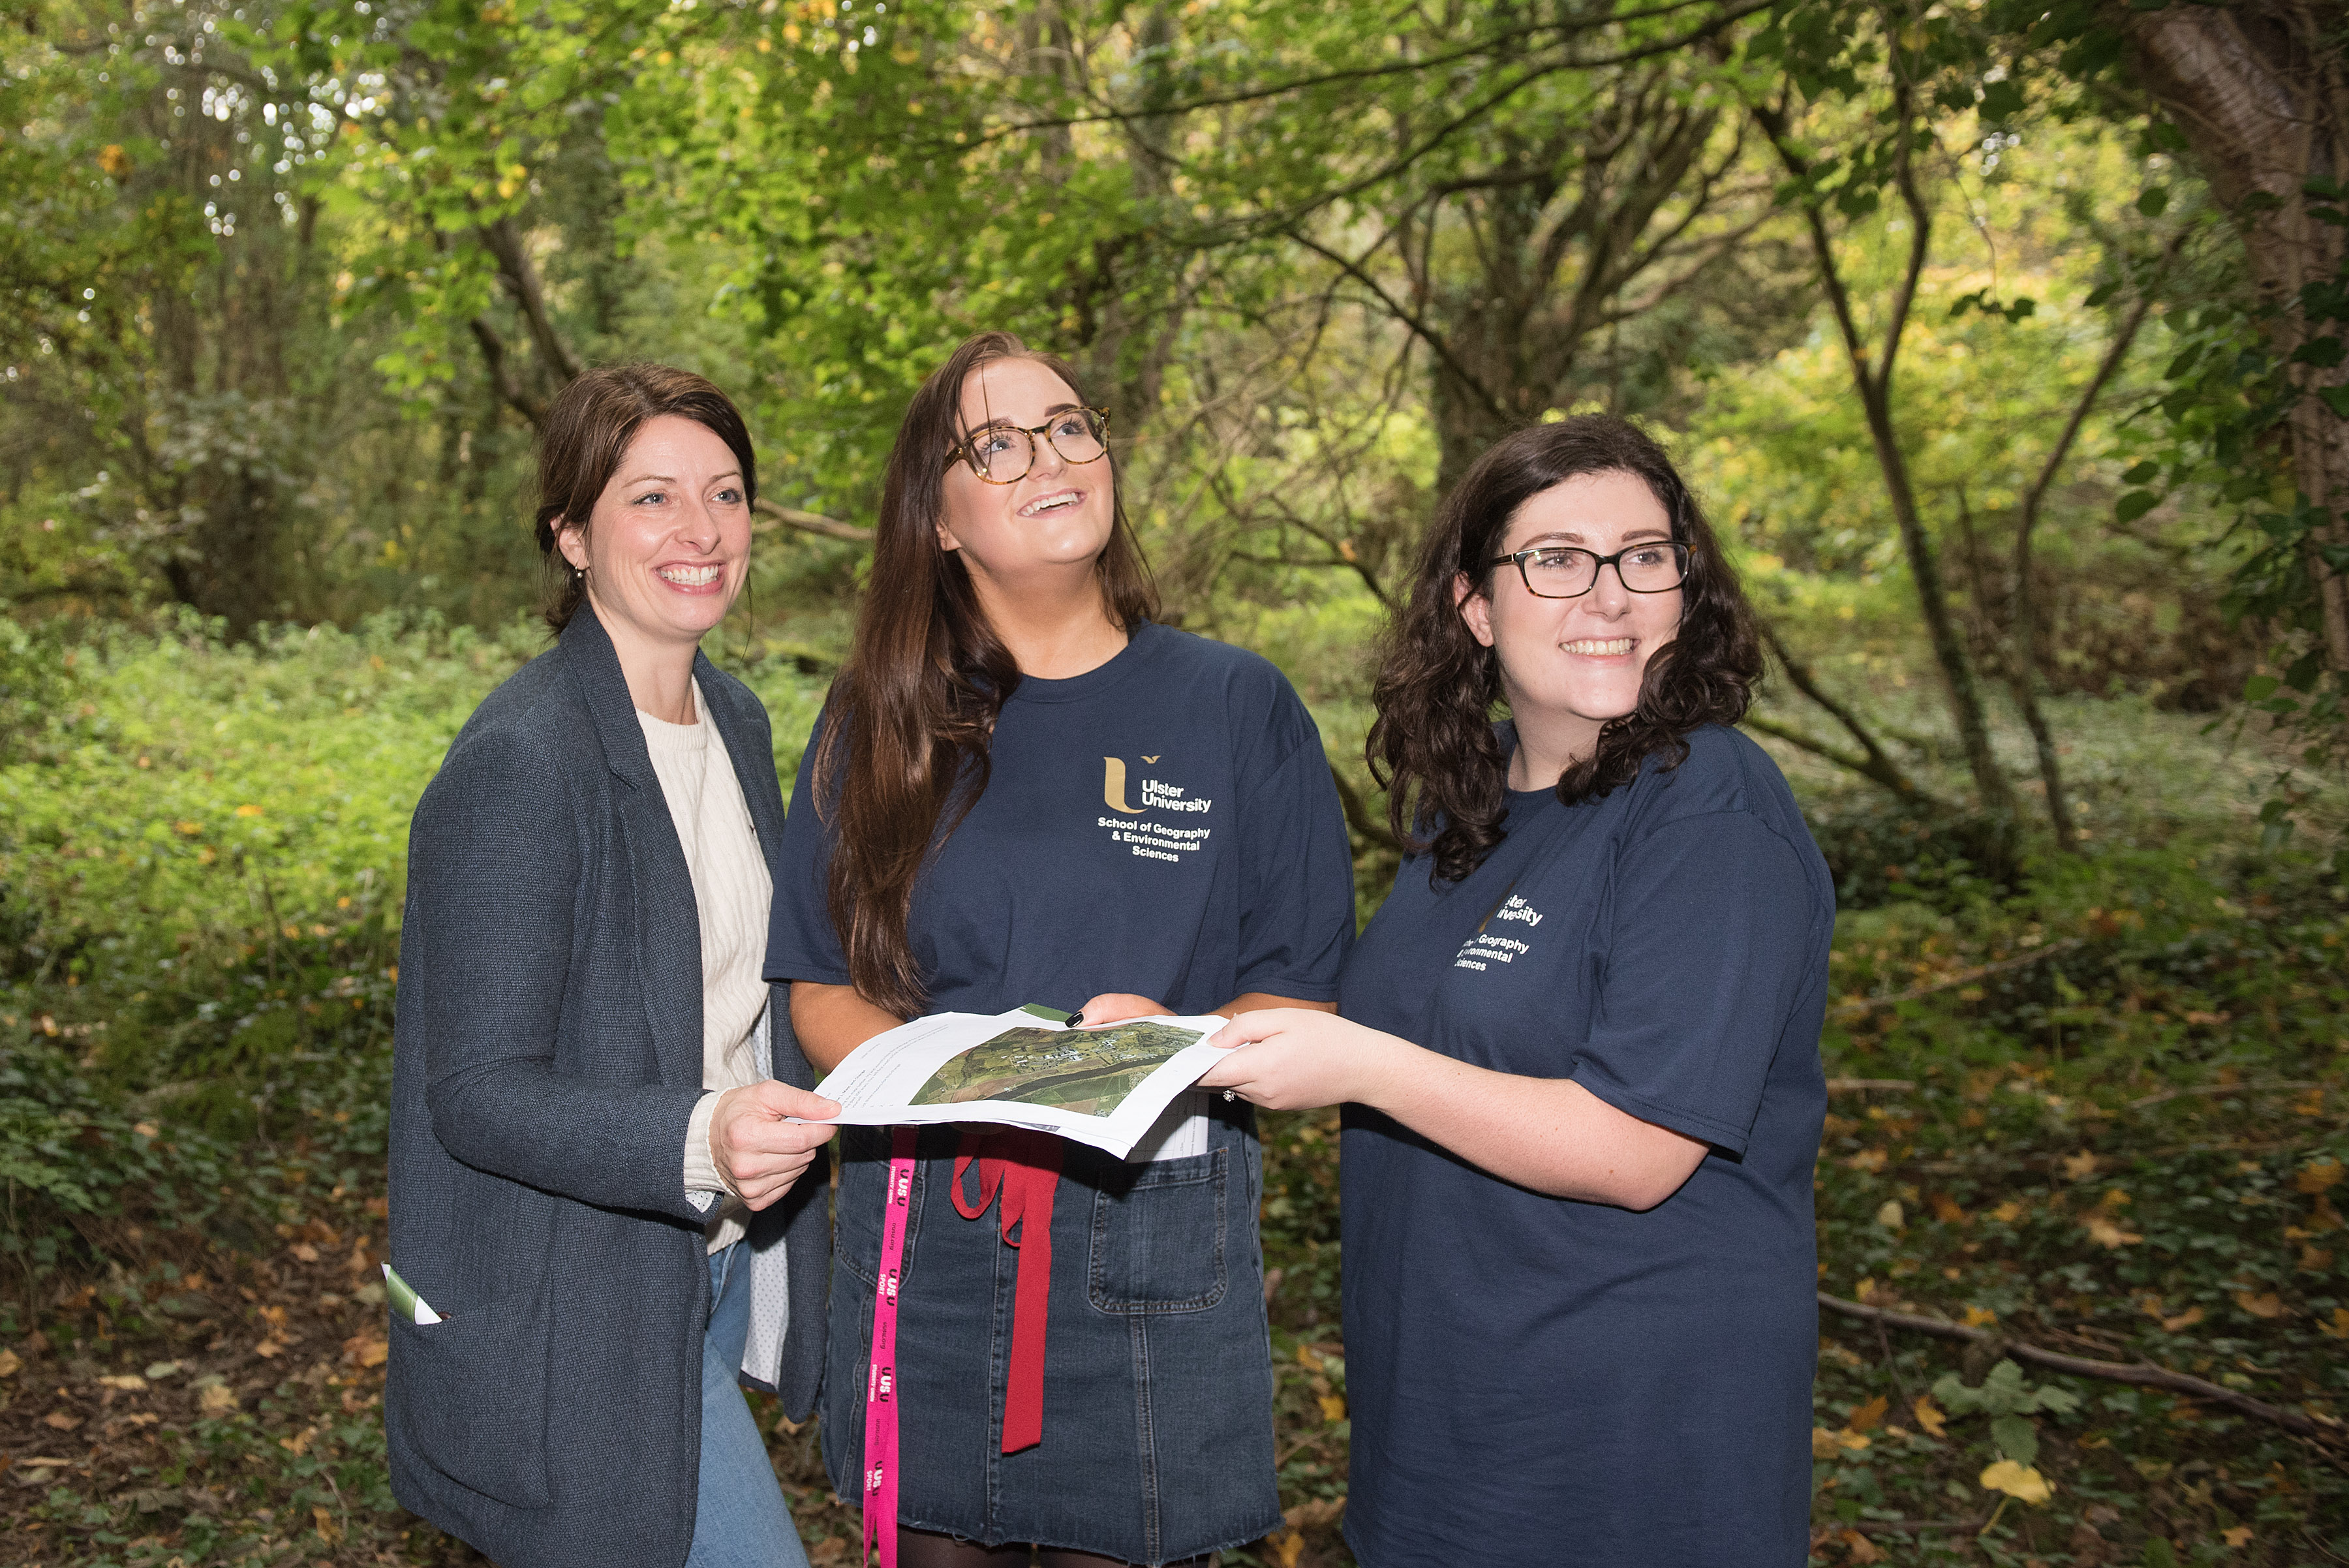 Karise Hutchinson with students at Coleraine walking trail